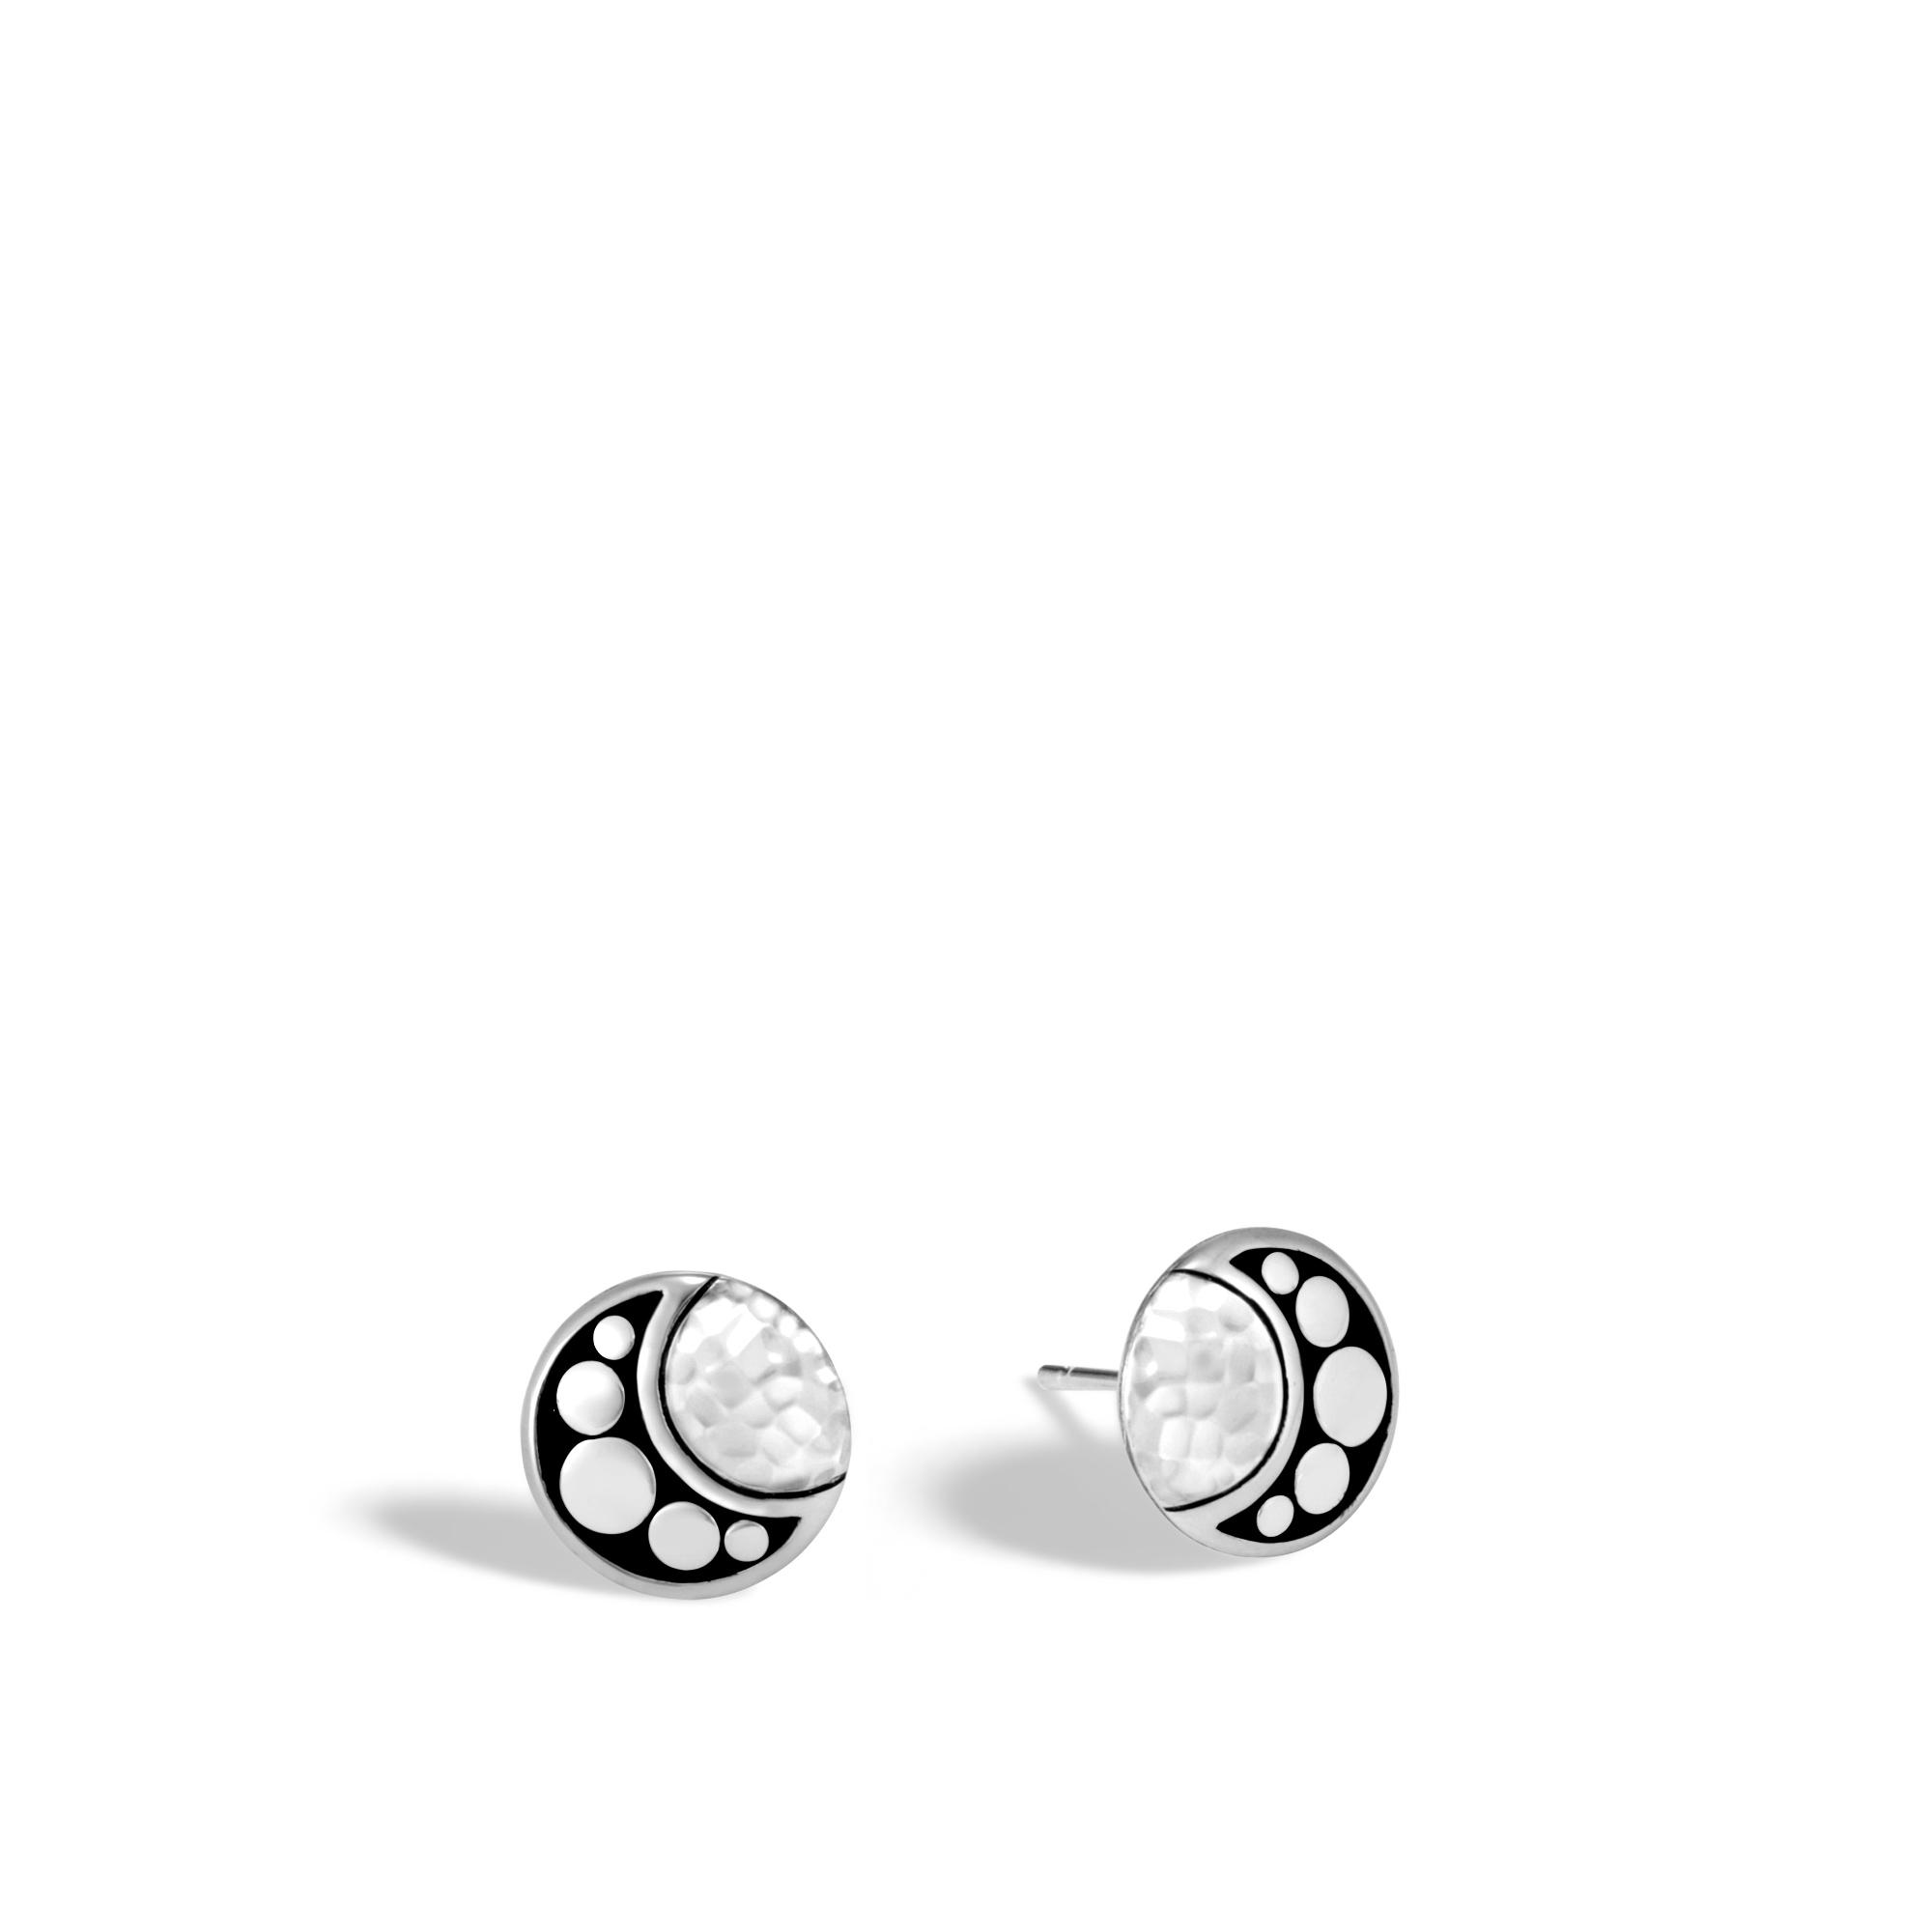 John Hardy Moon Phase Hammered Stud Earring 1WX0r